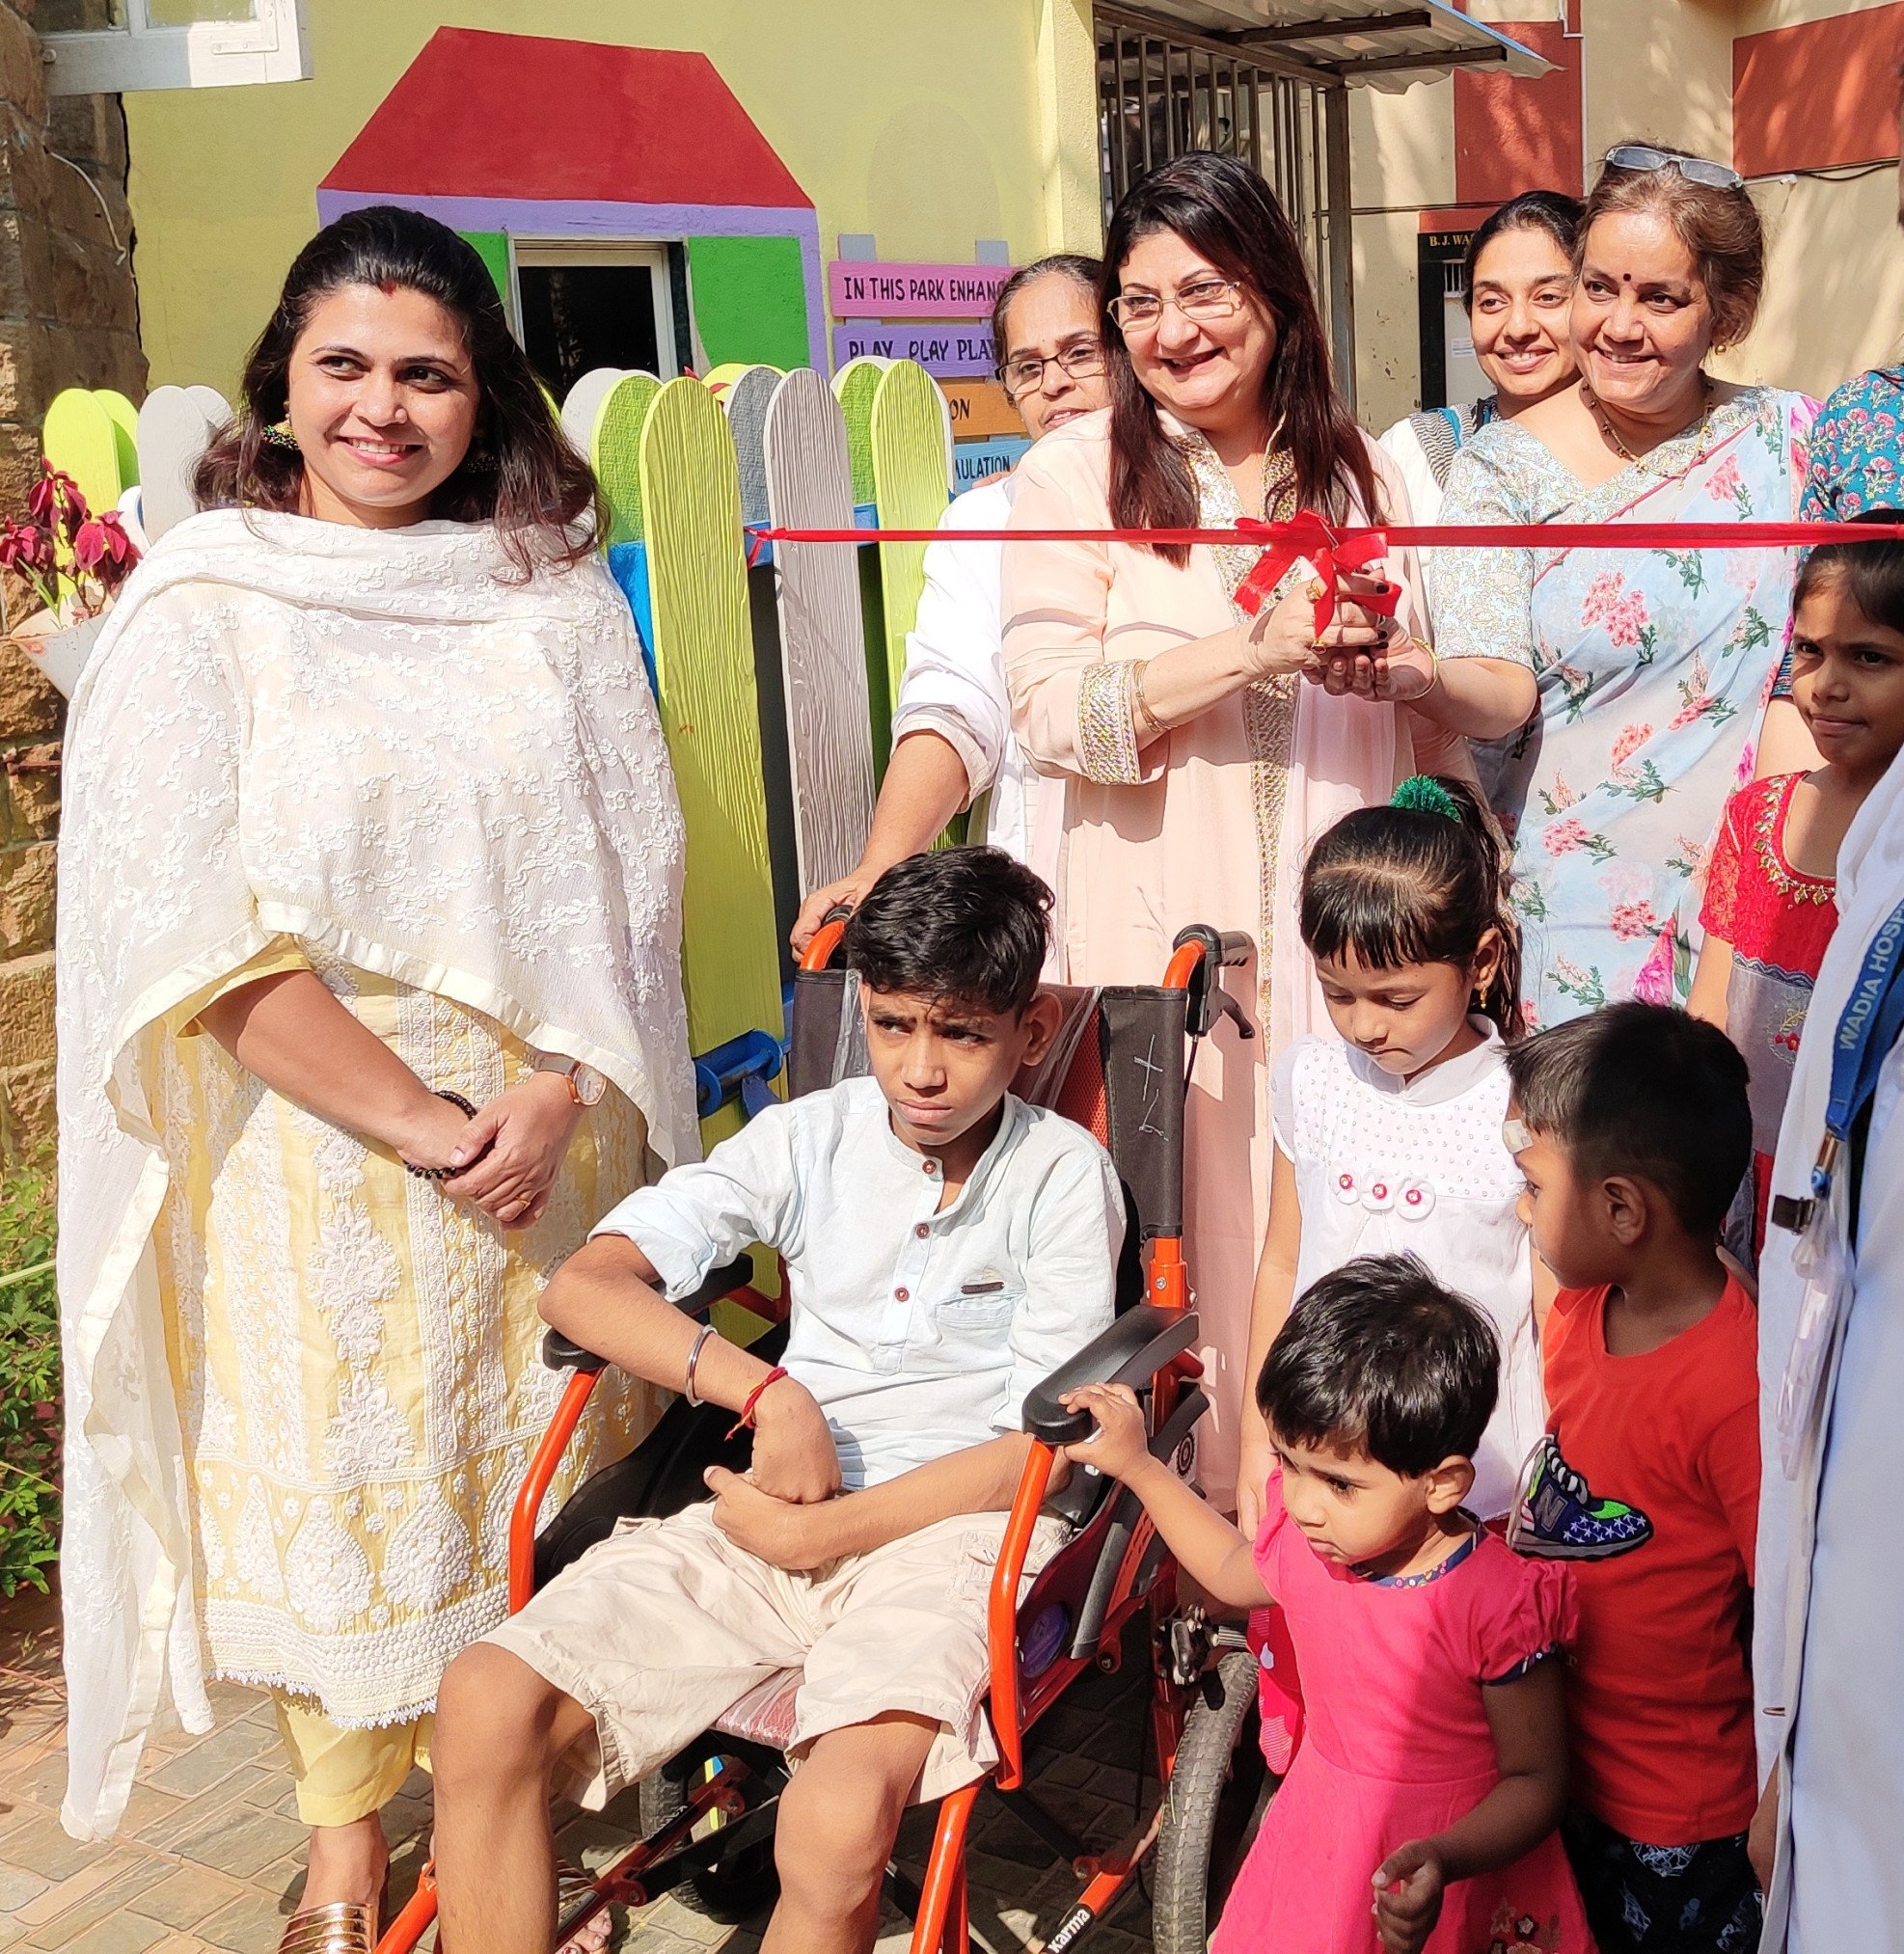 Childrens Day: Wadia Hospital Introduces India's First Therapy Park For Paediatric Patients In Hospital Premises